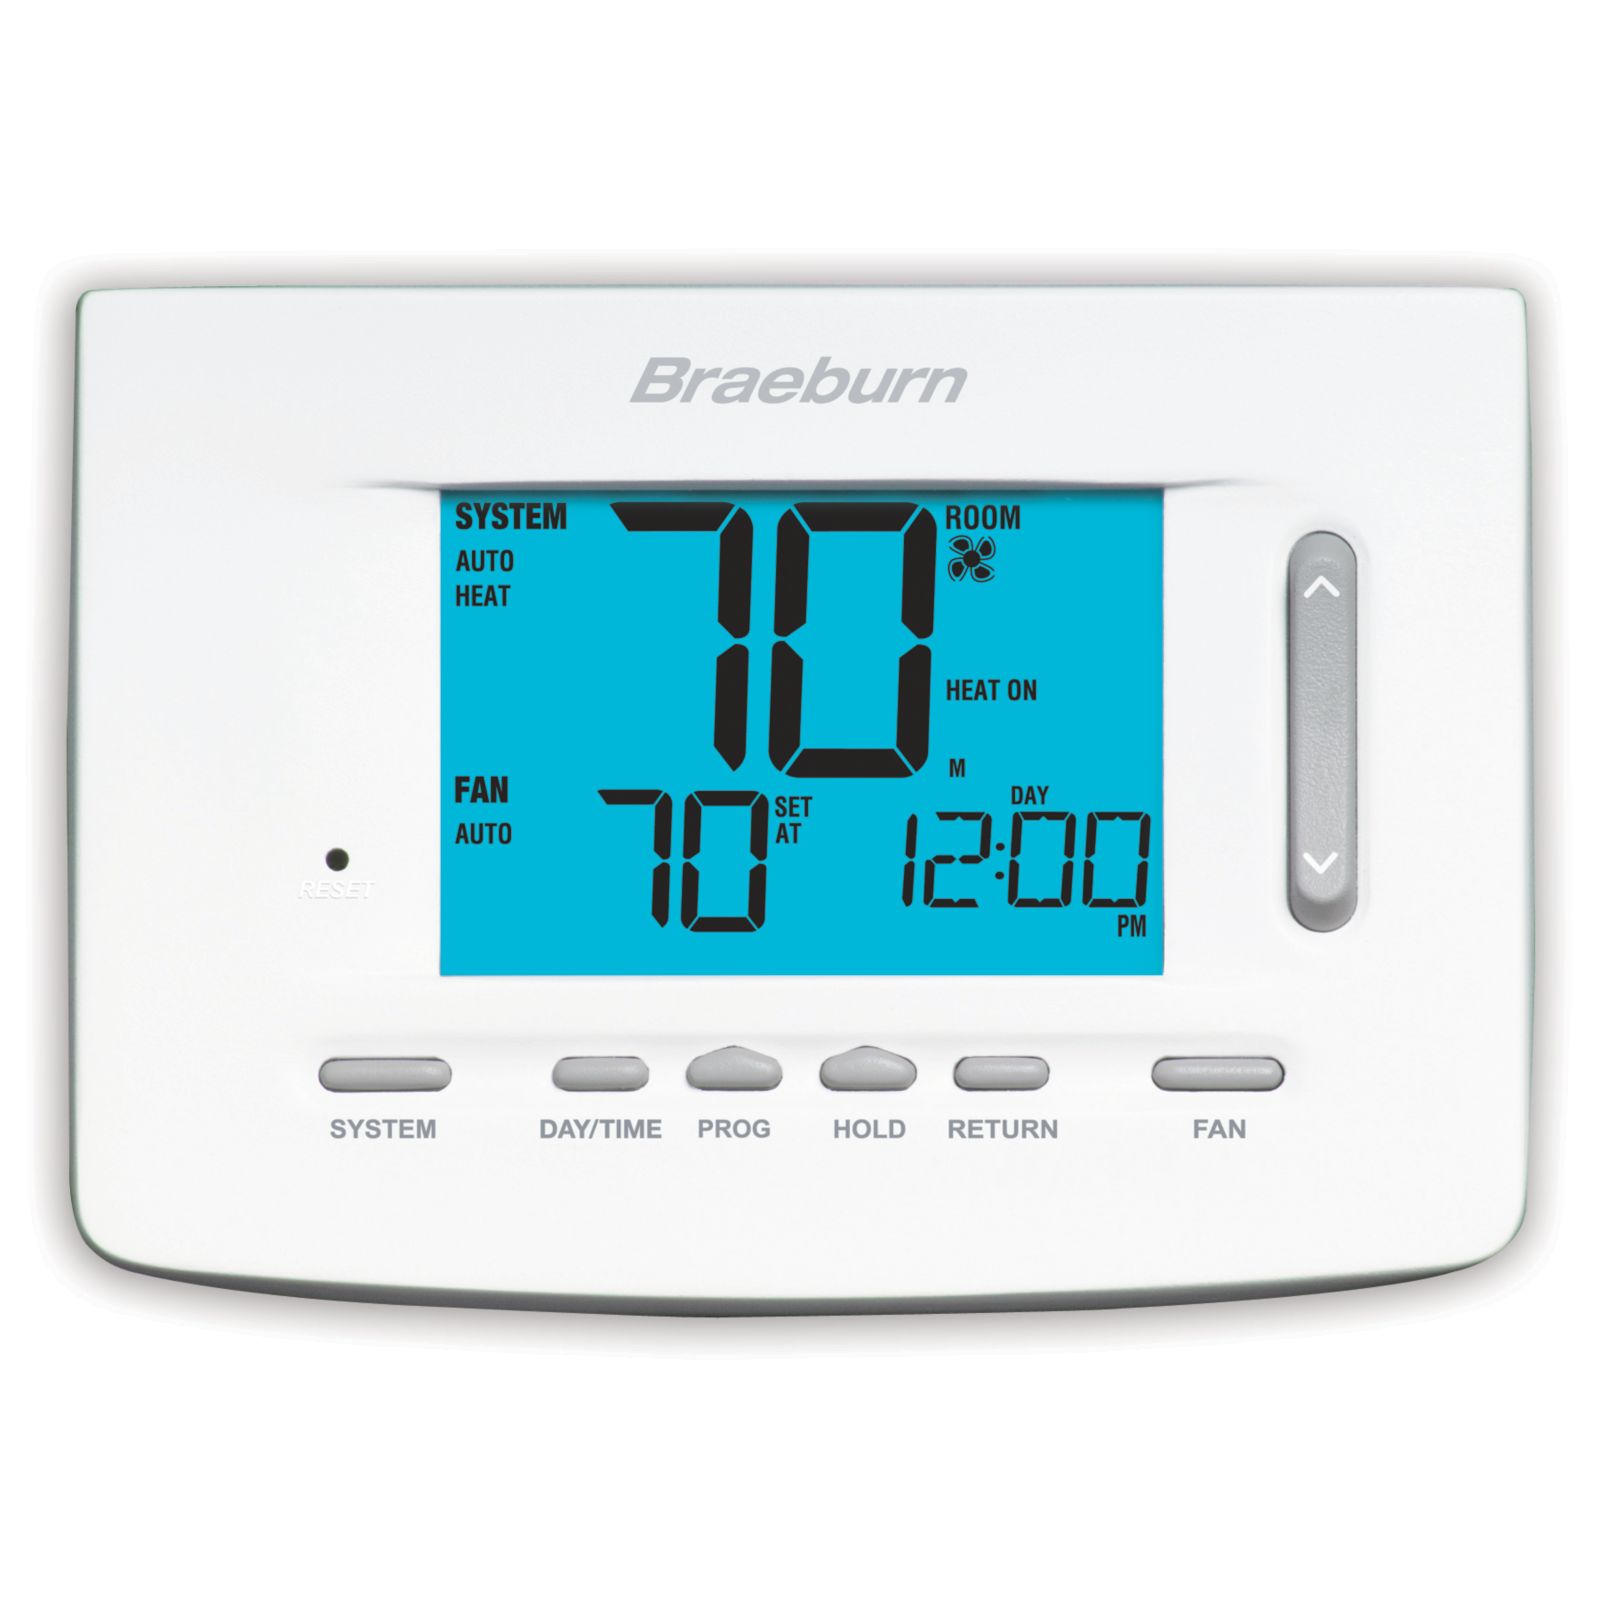 Braeburn 5020 - Premier 7 Day Programmable Thermostat 1H / 2C